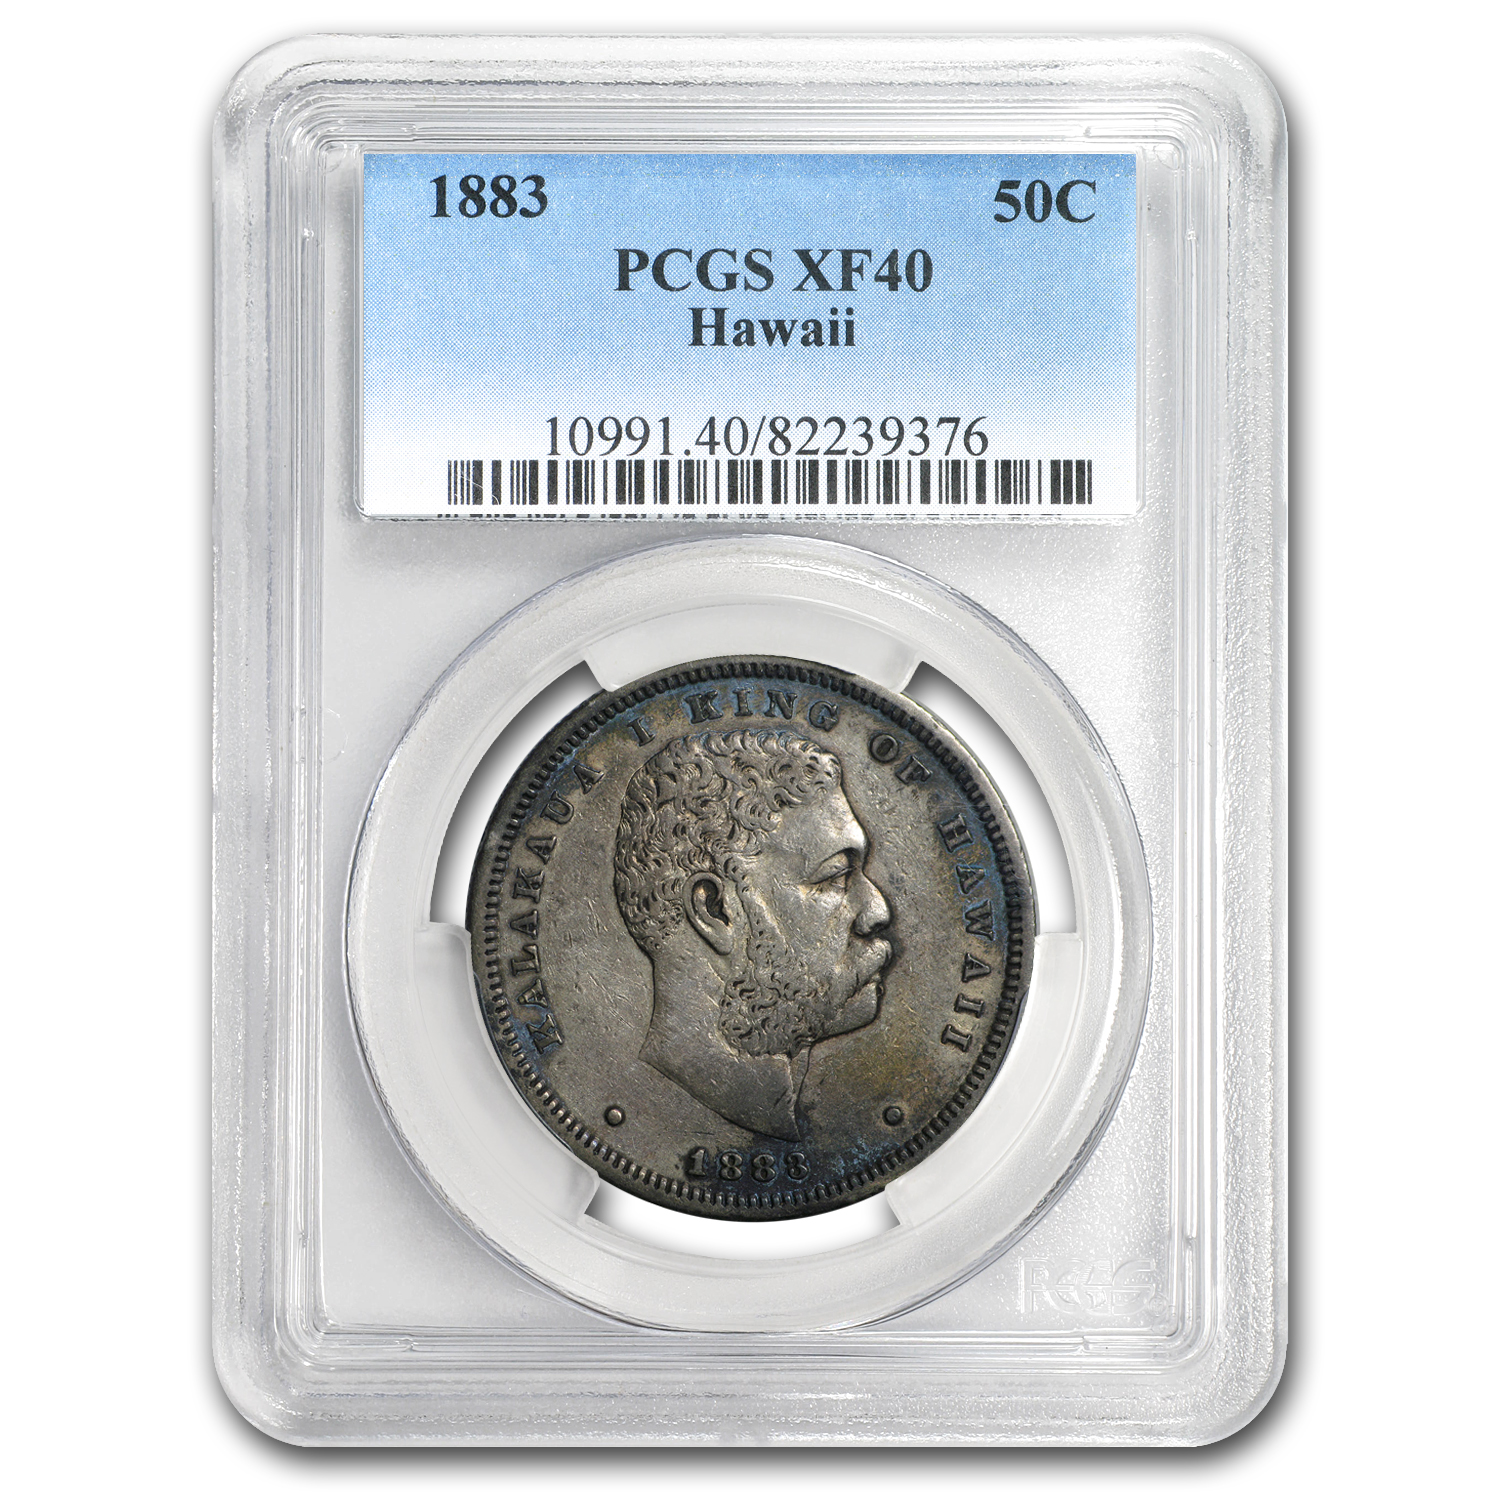 1883 Hawaii Half Dollar XF-40 PCGS